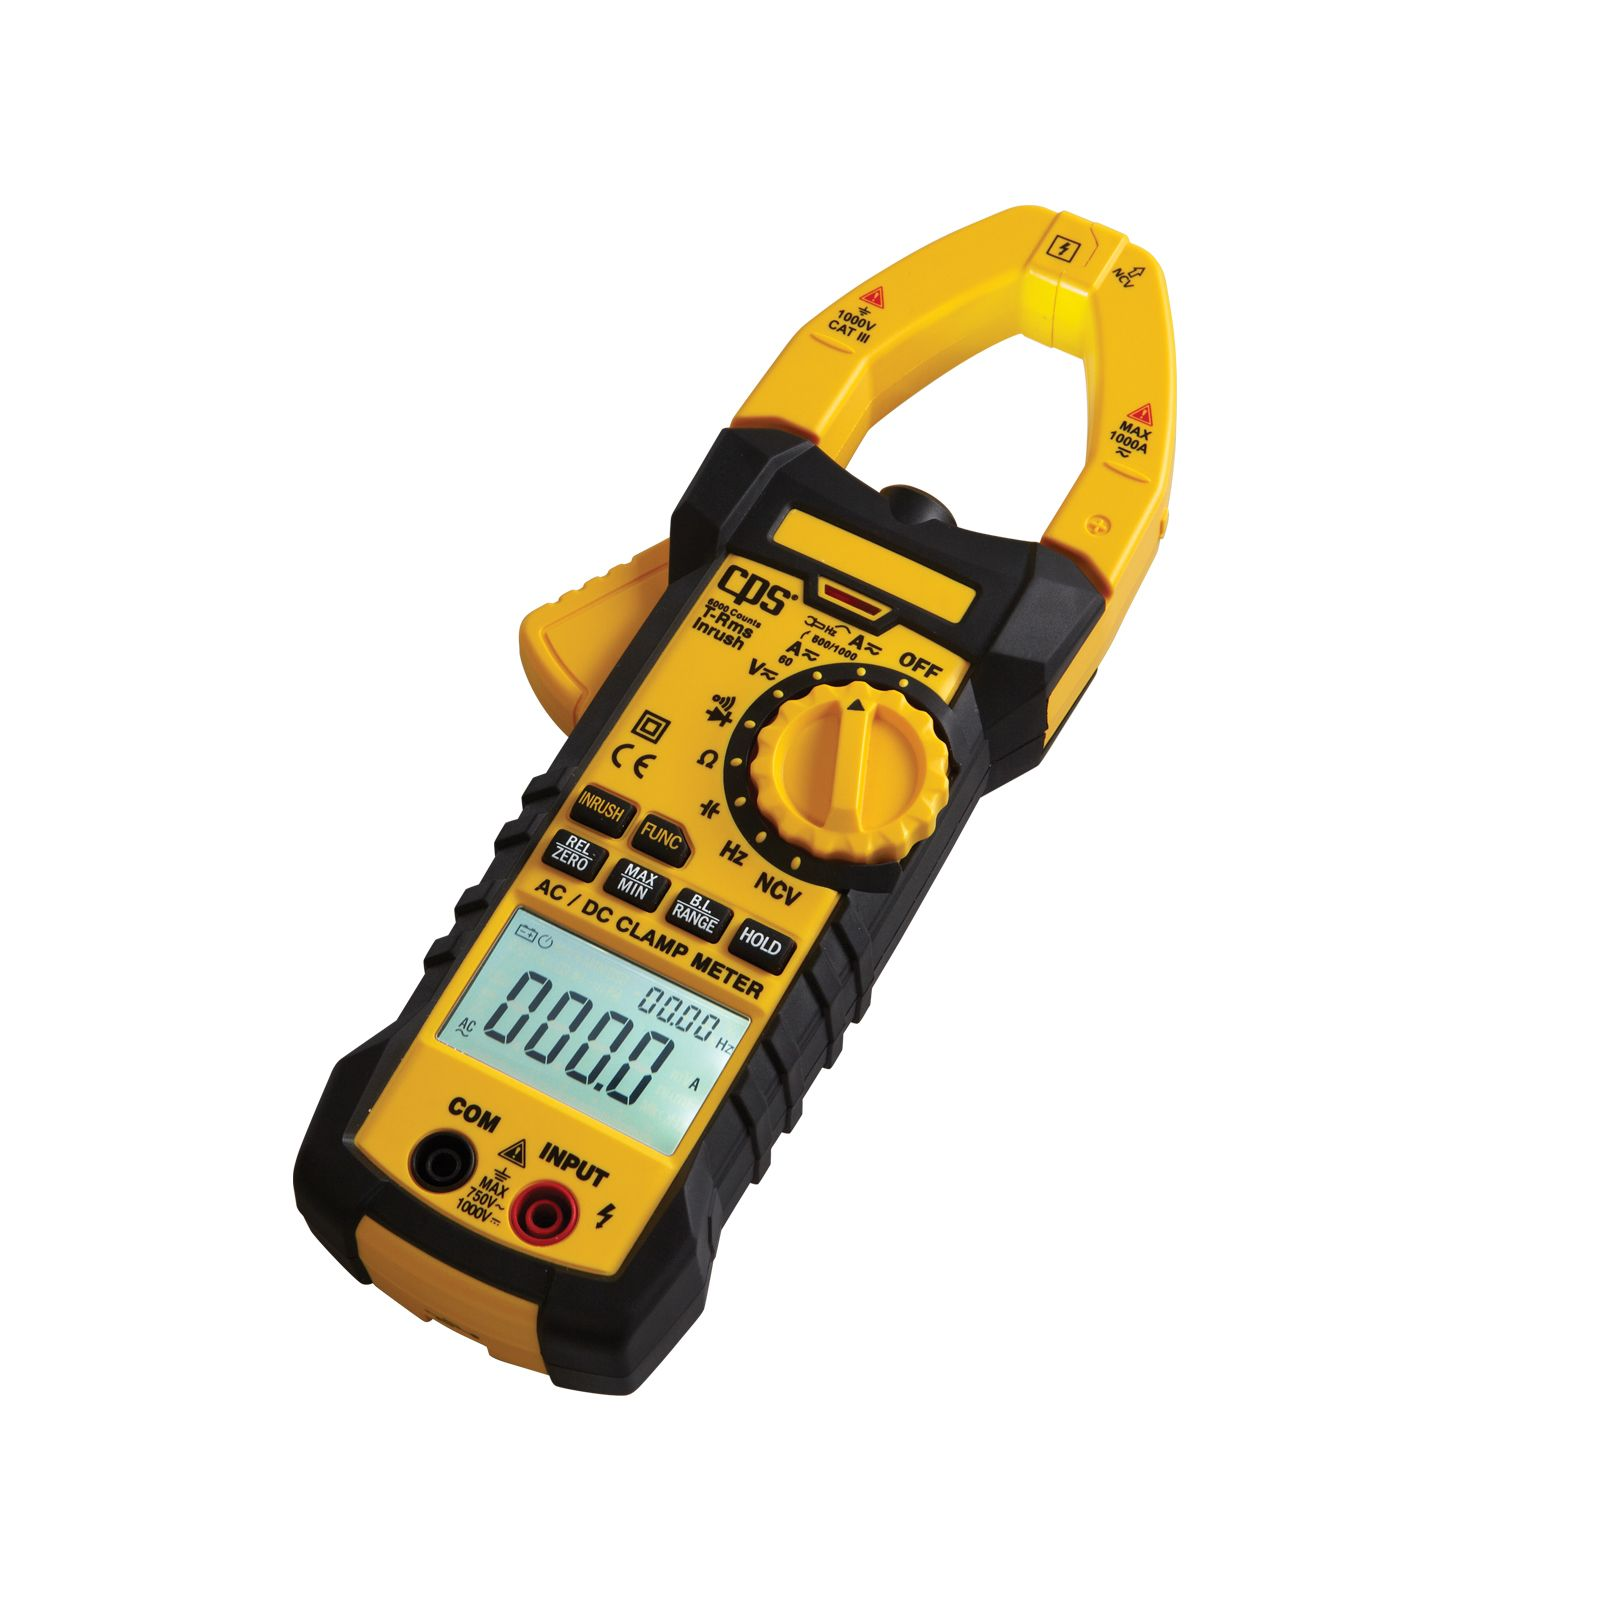 CPS AC750 - Multi-Functional AC/DC True RMS Clamp Meter